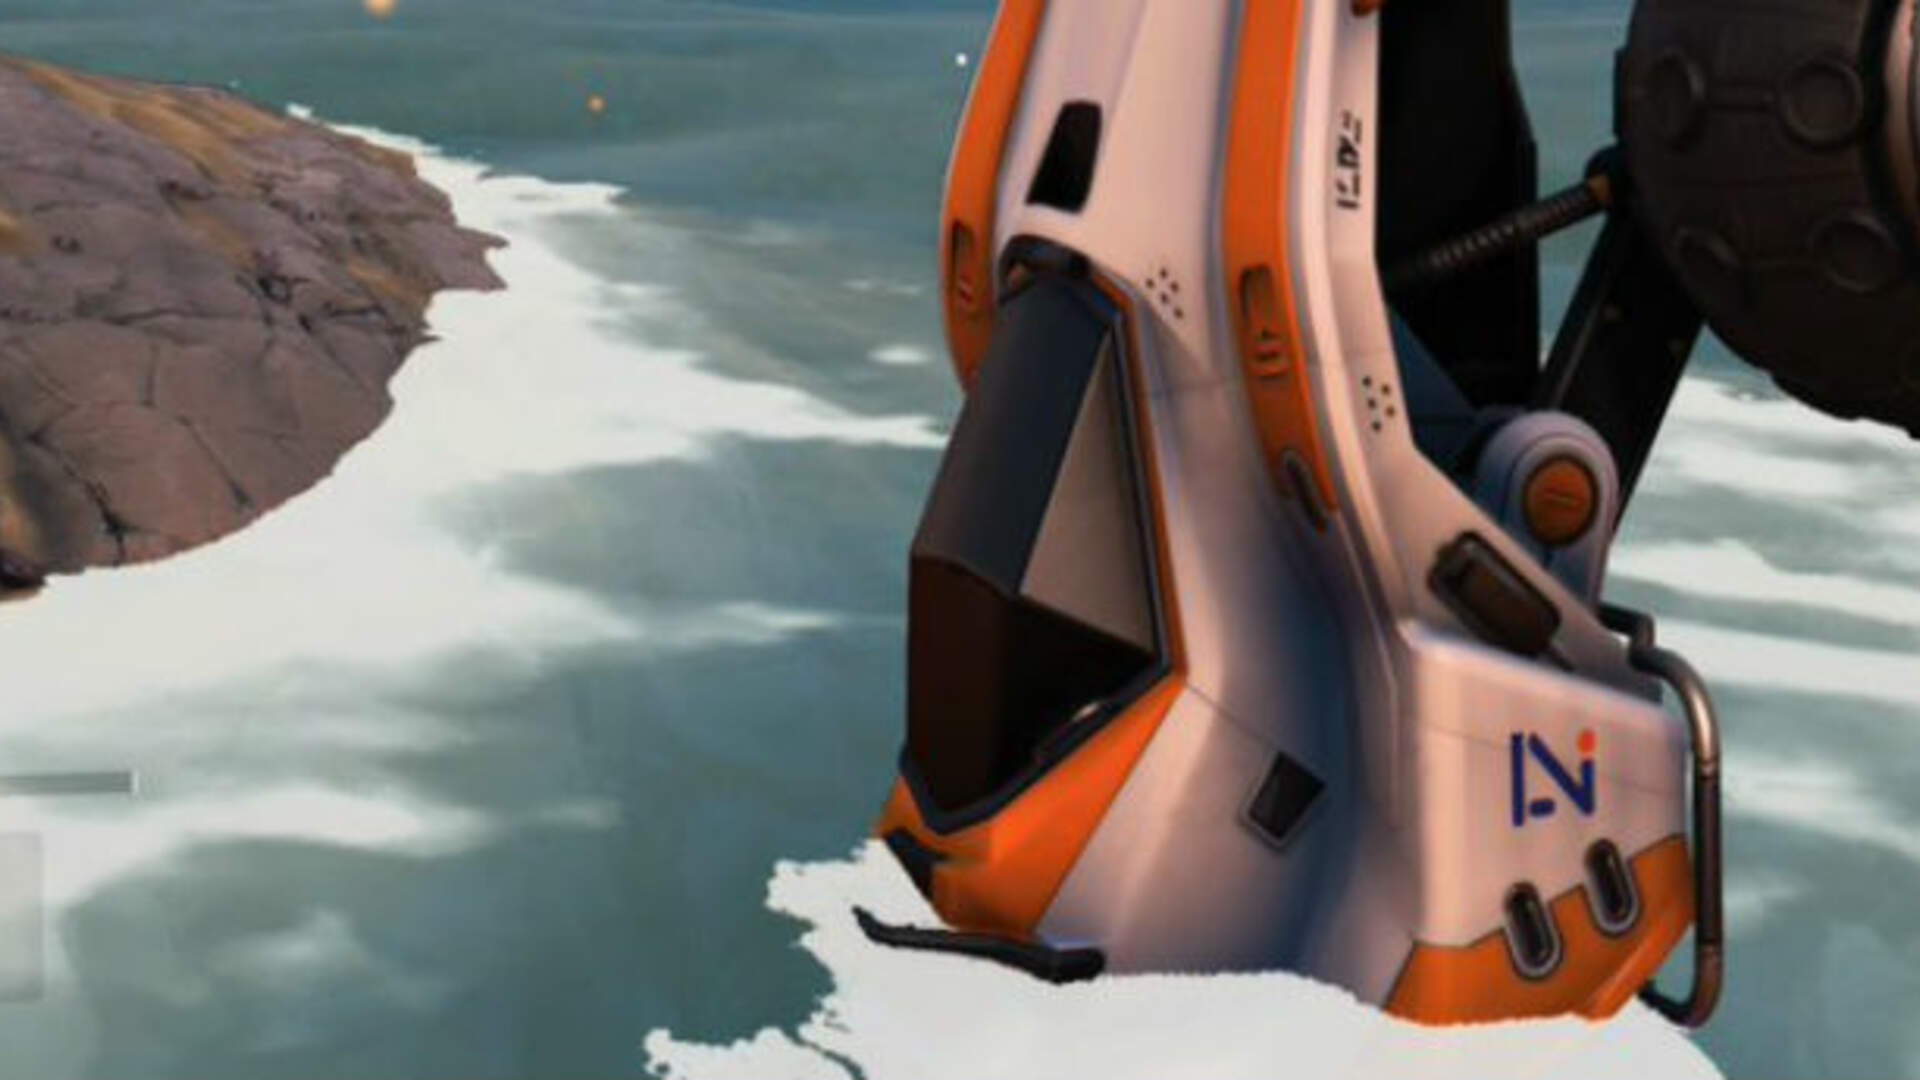 5 Things That Are Driving Me Crazy in No Man's Sky Even After the Update